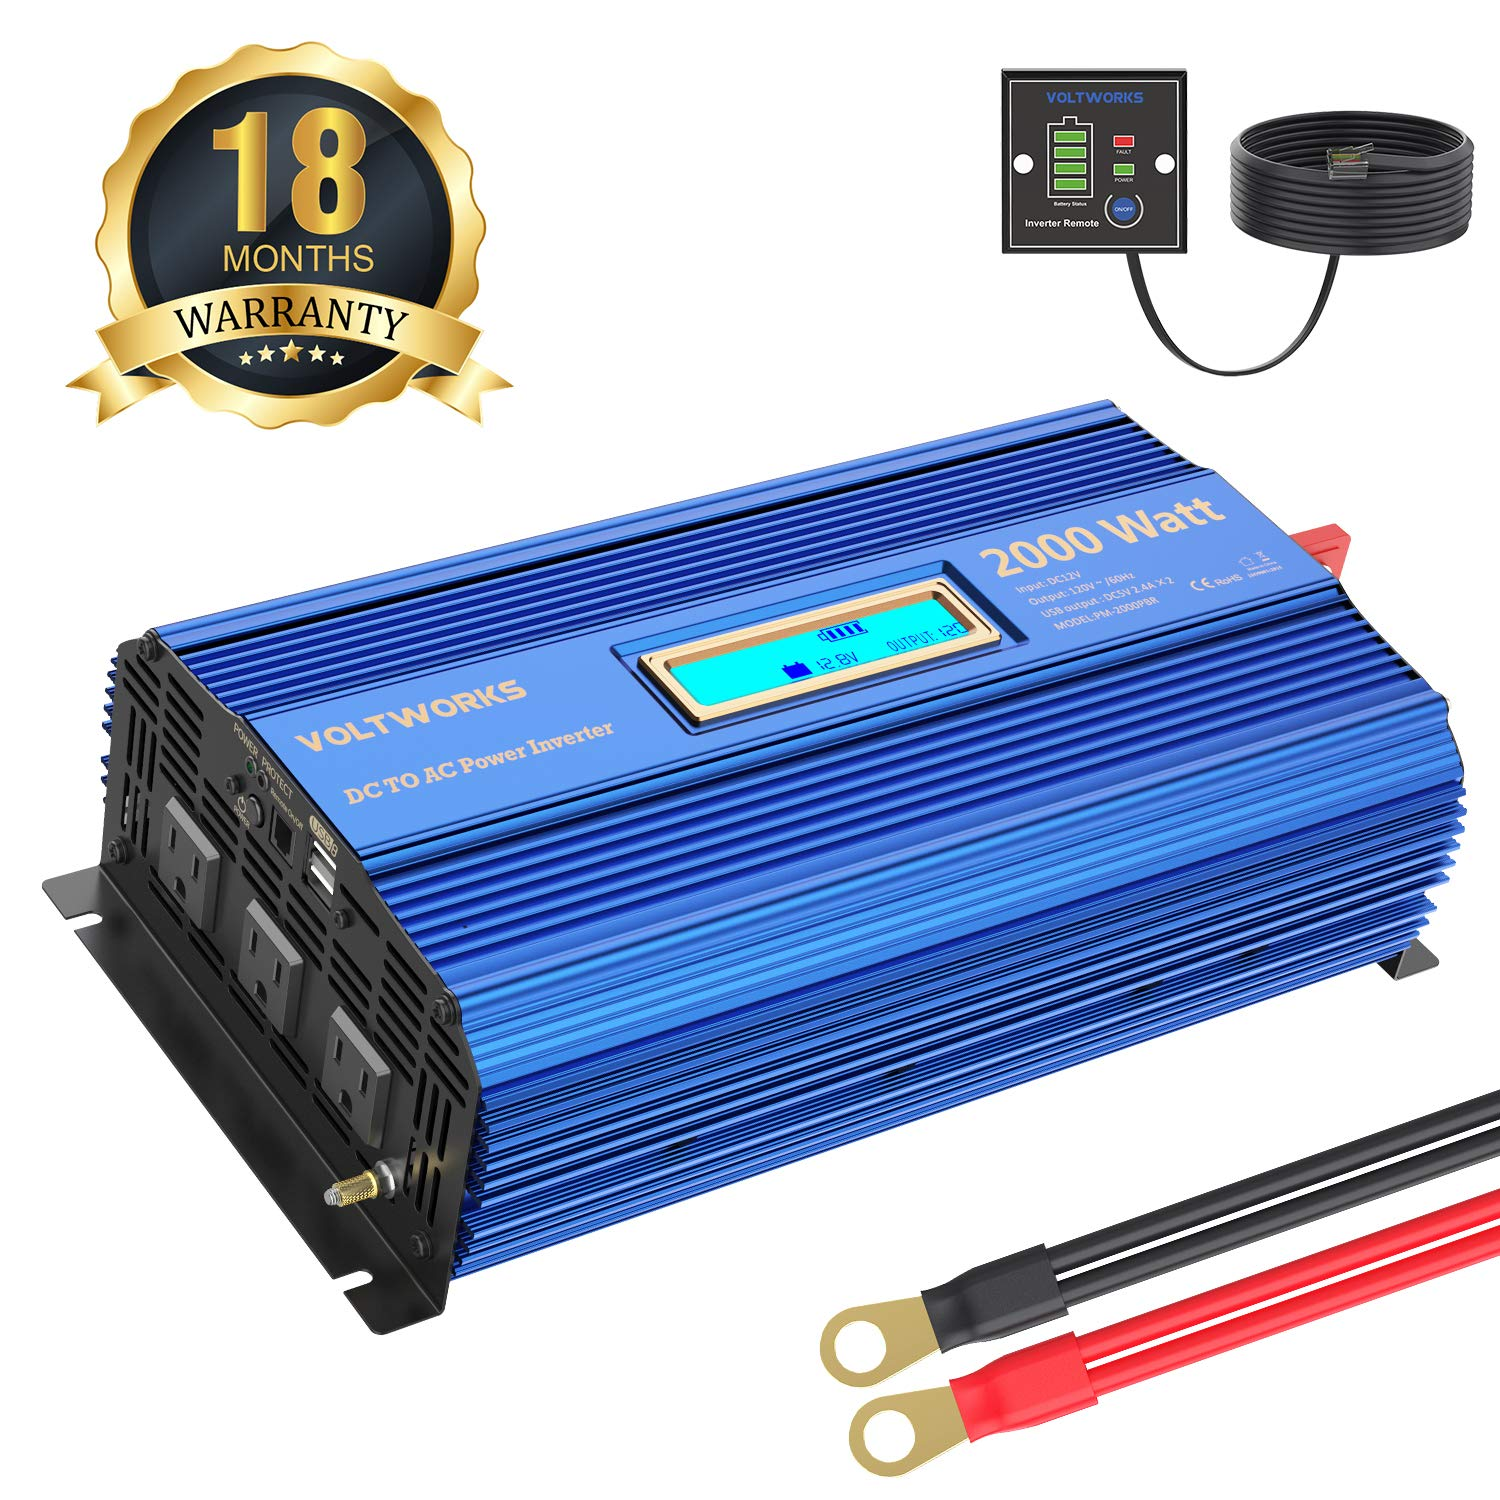 Best 2000 Watt Inverter In 2020 - Reviews & Top Picks 2